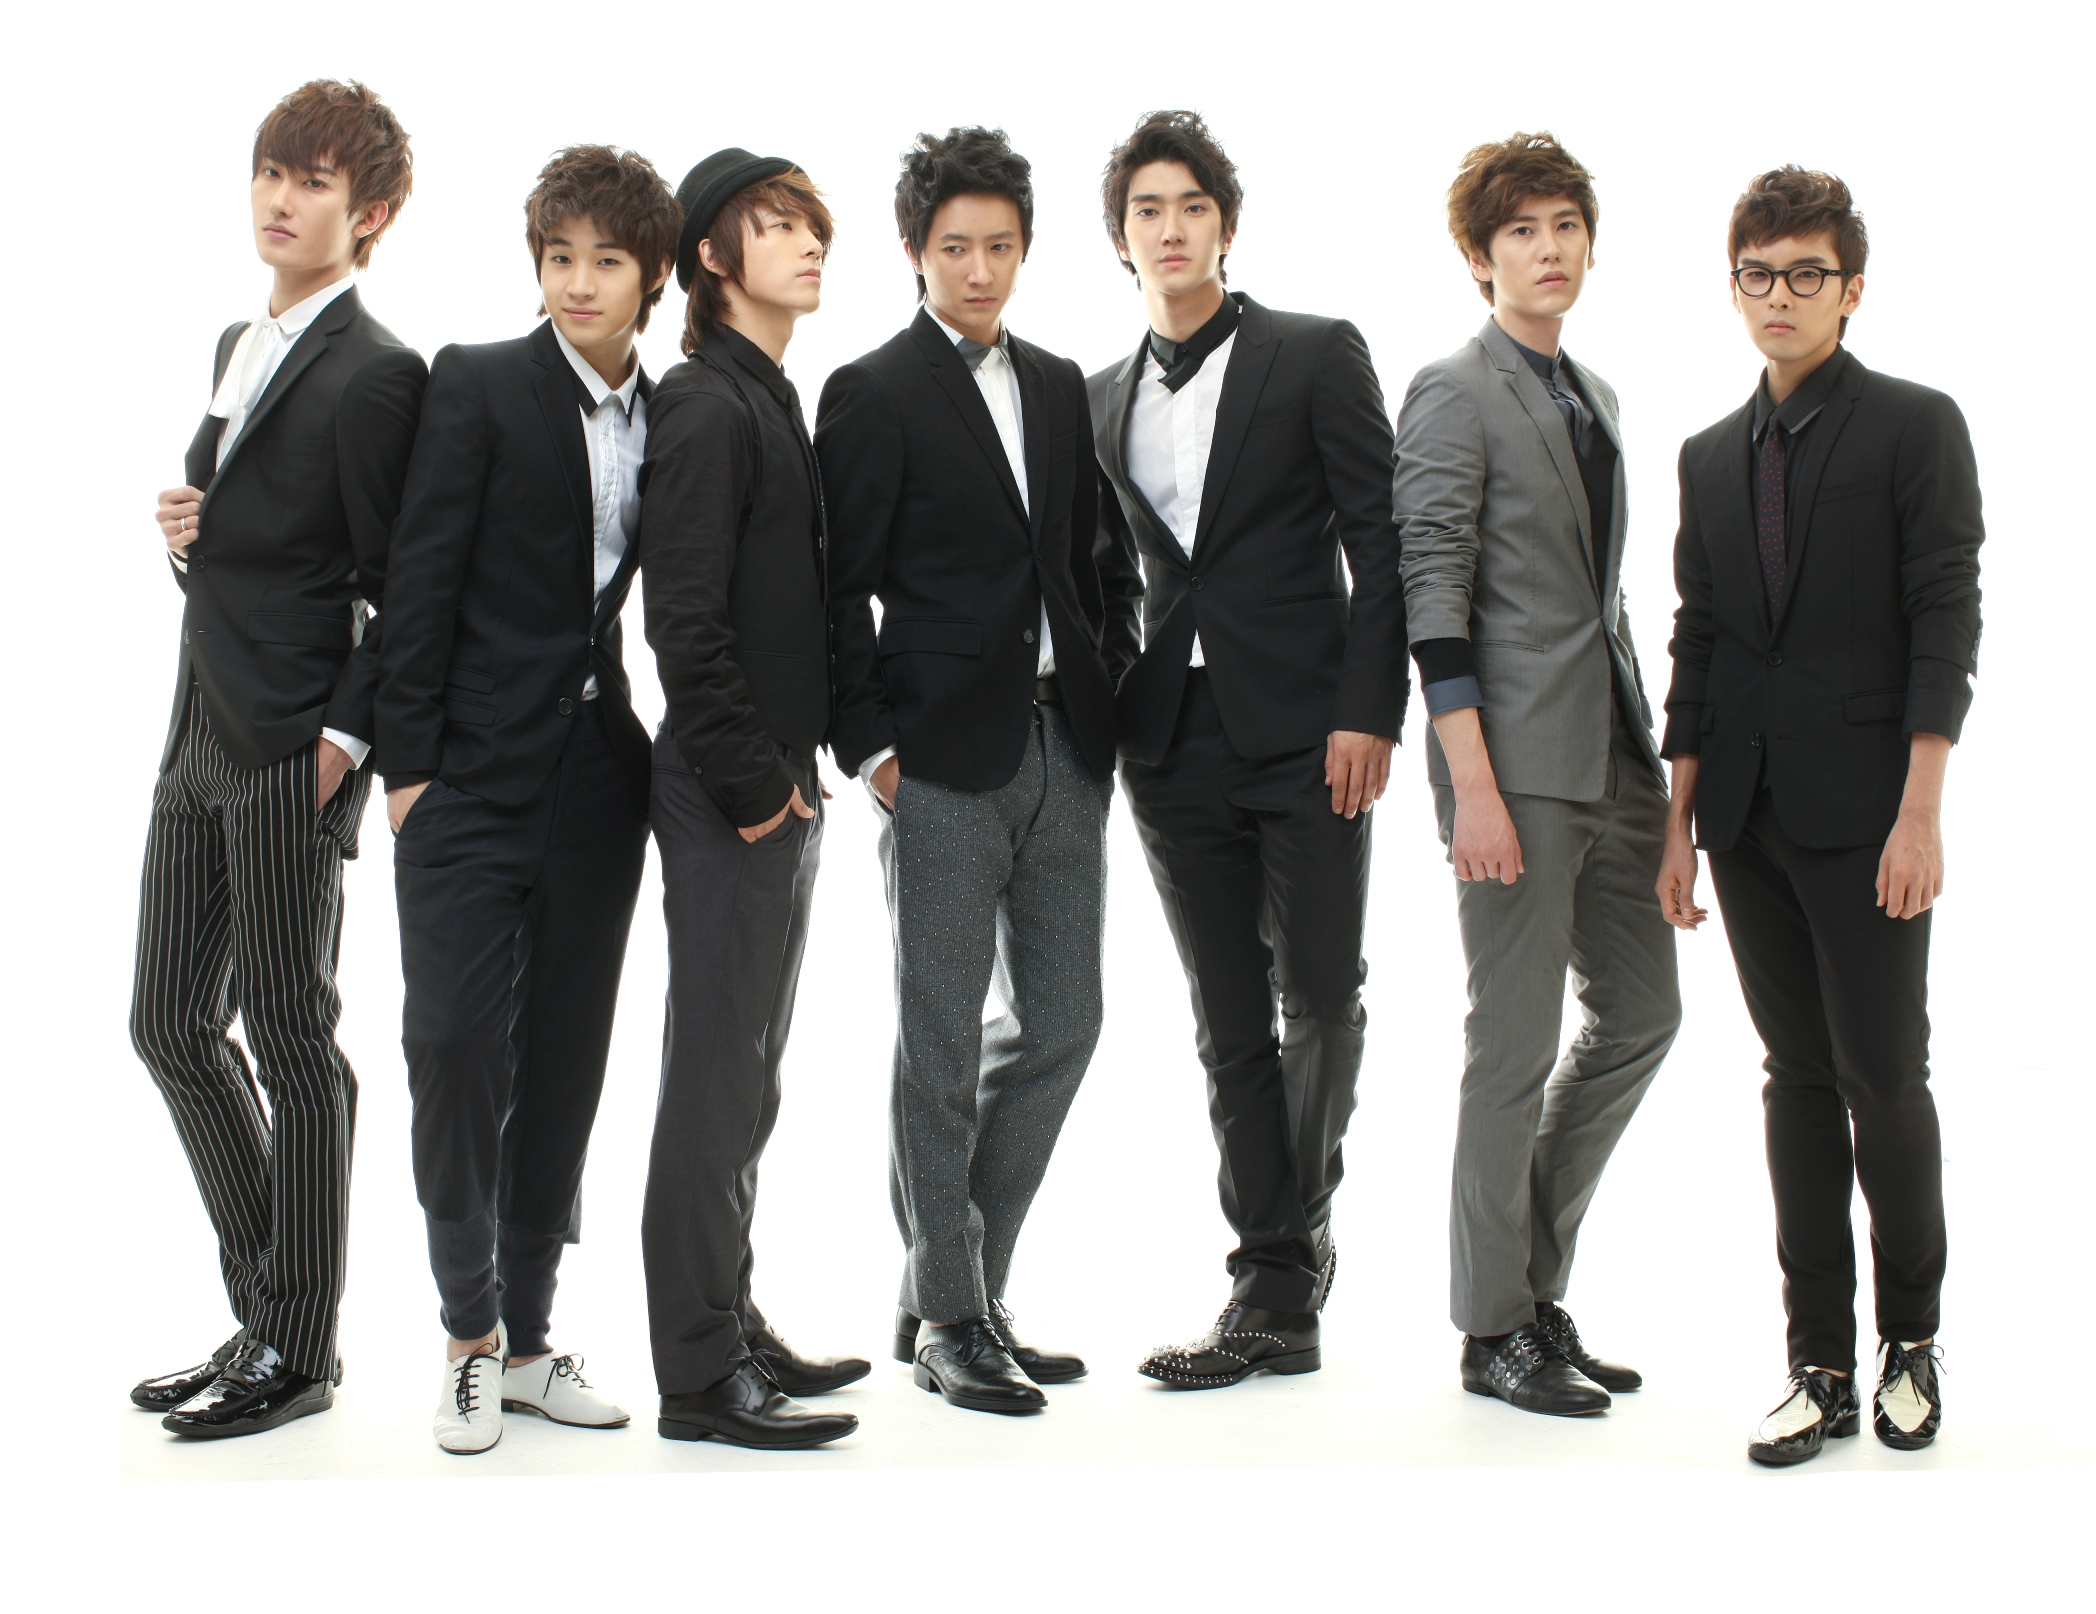 Super Junior M, one of the group's many subunits